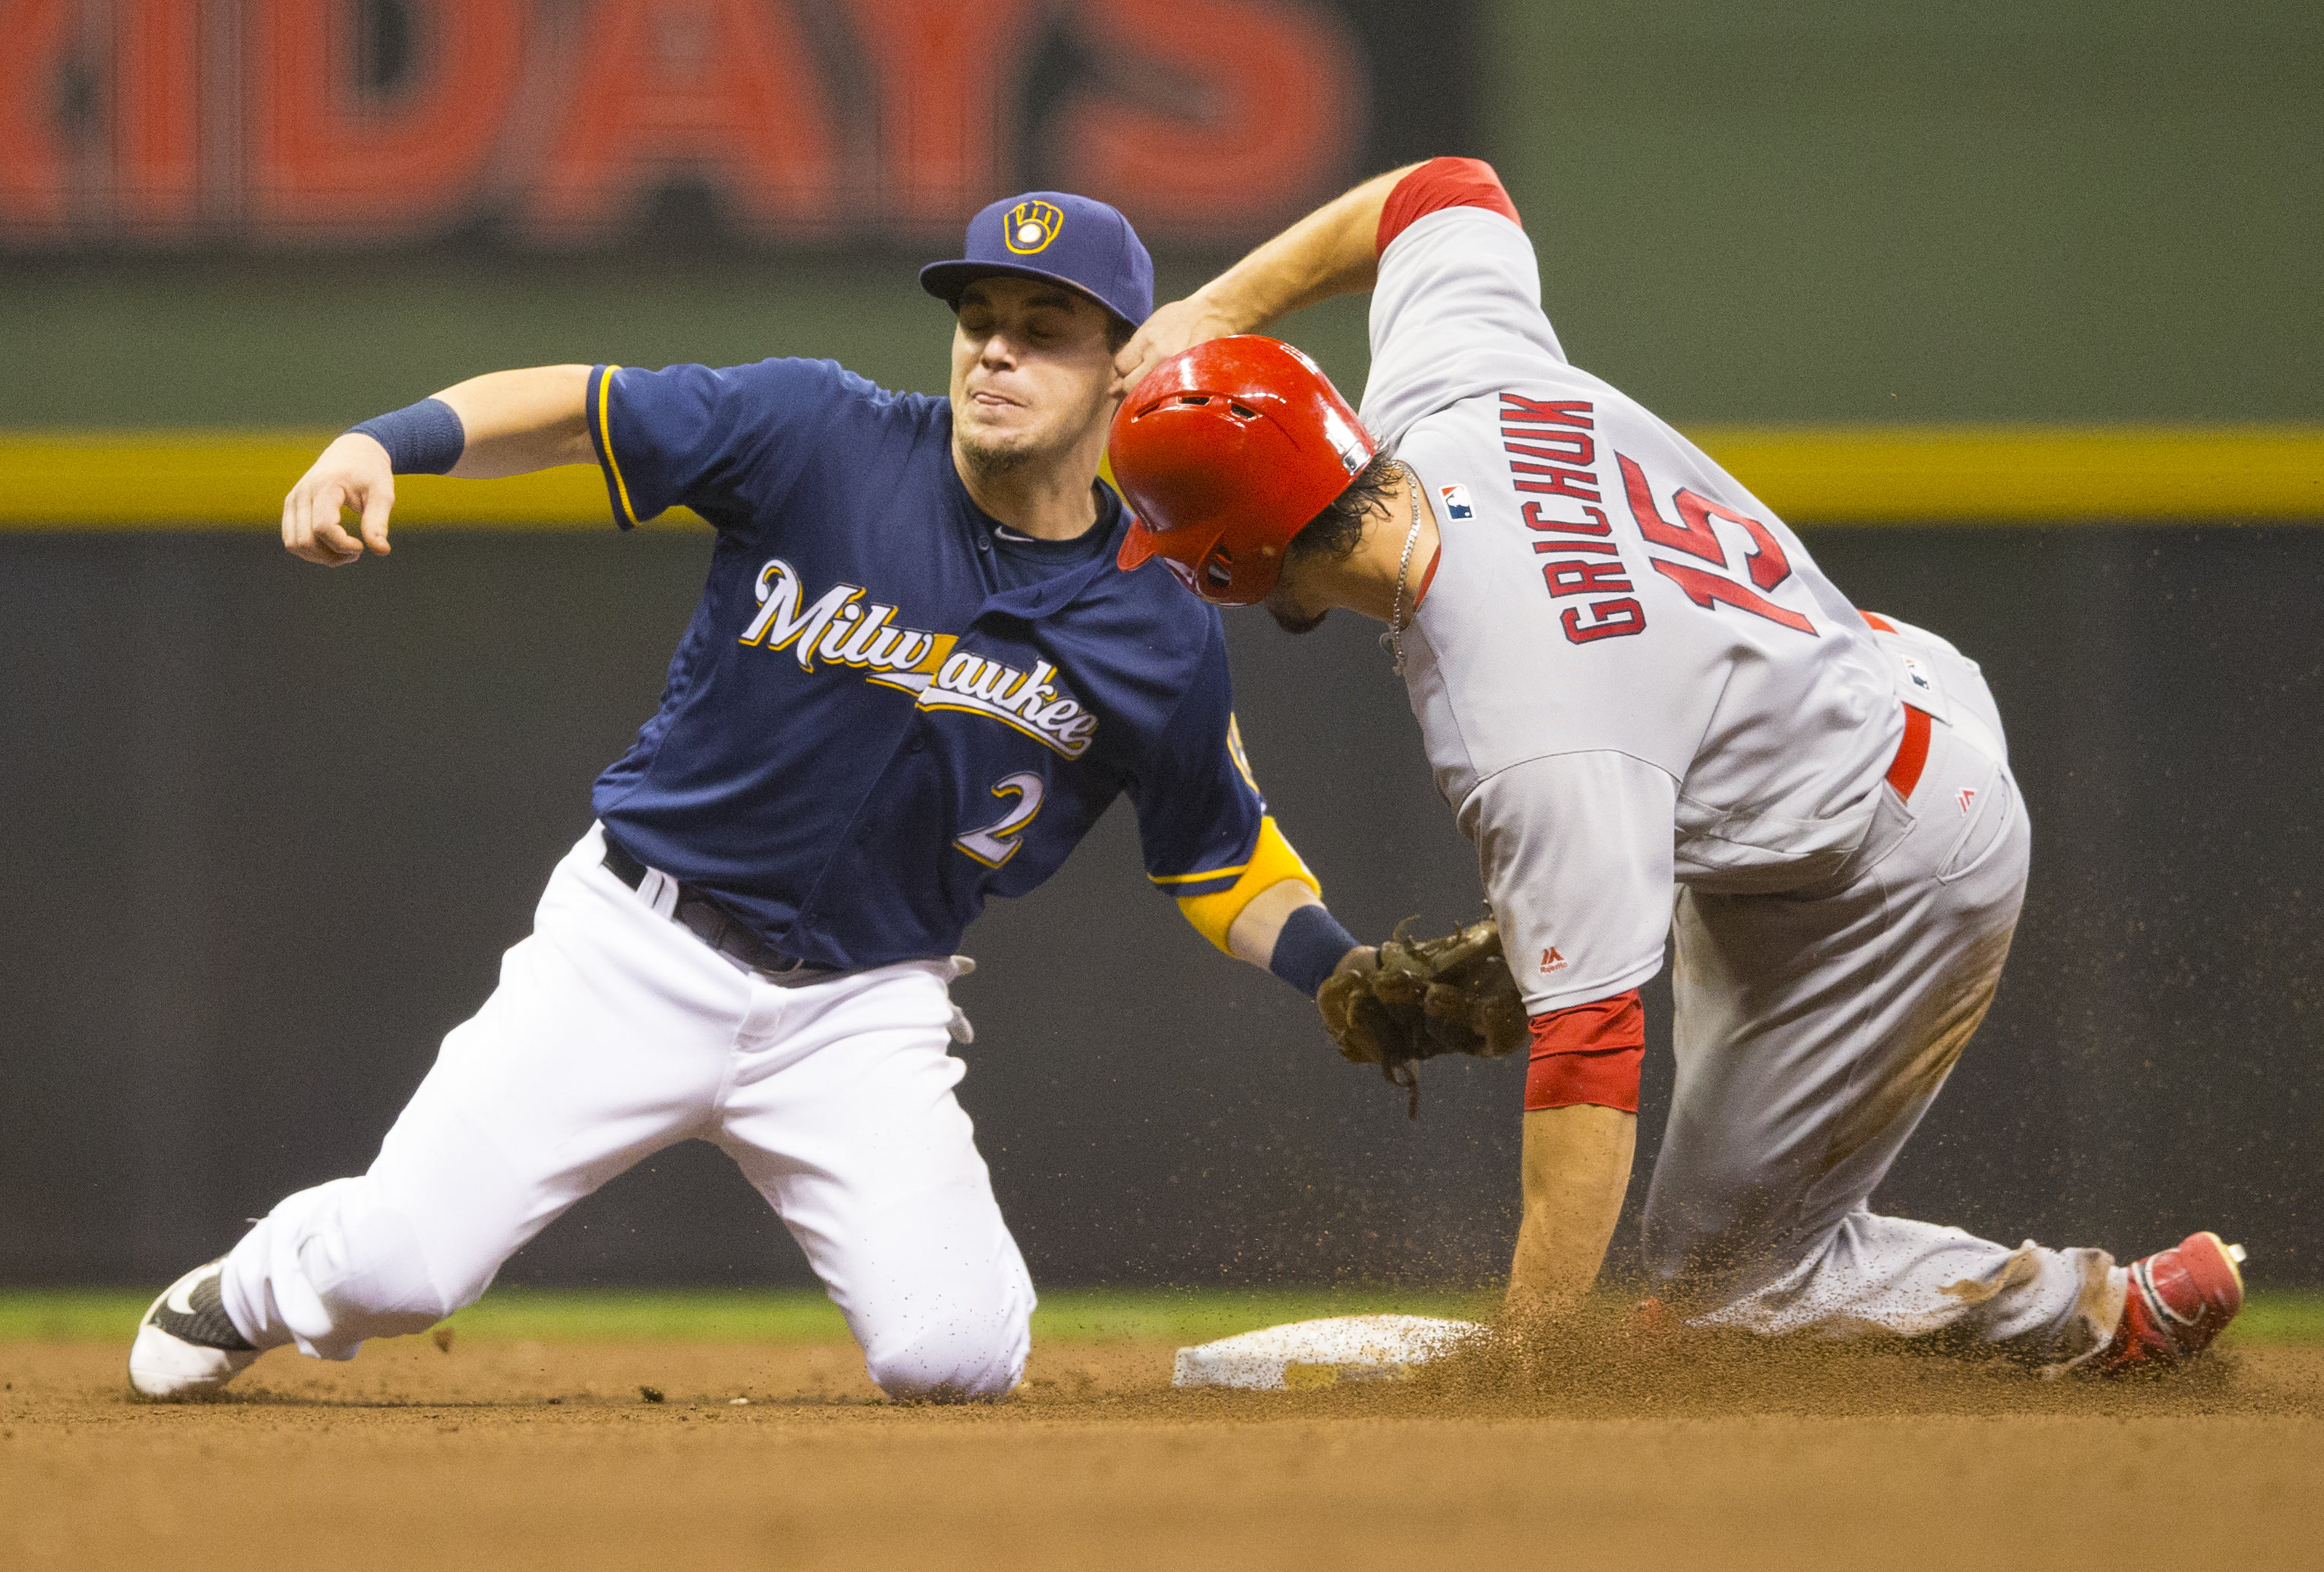 9507950-mlb-st.-louis-cardinals-at-milwaukee-brewers